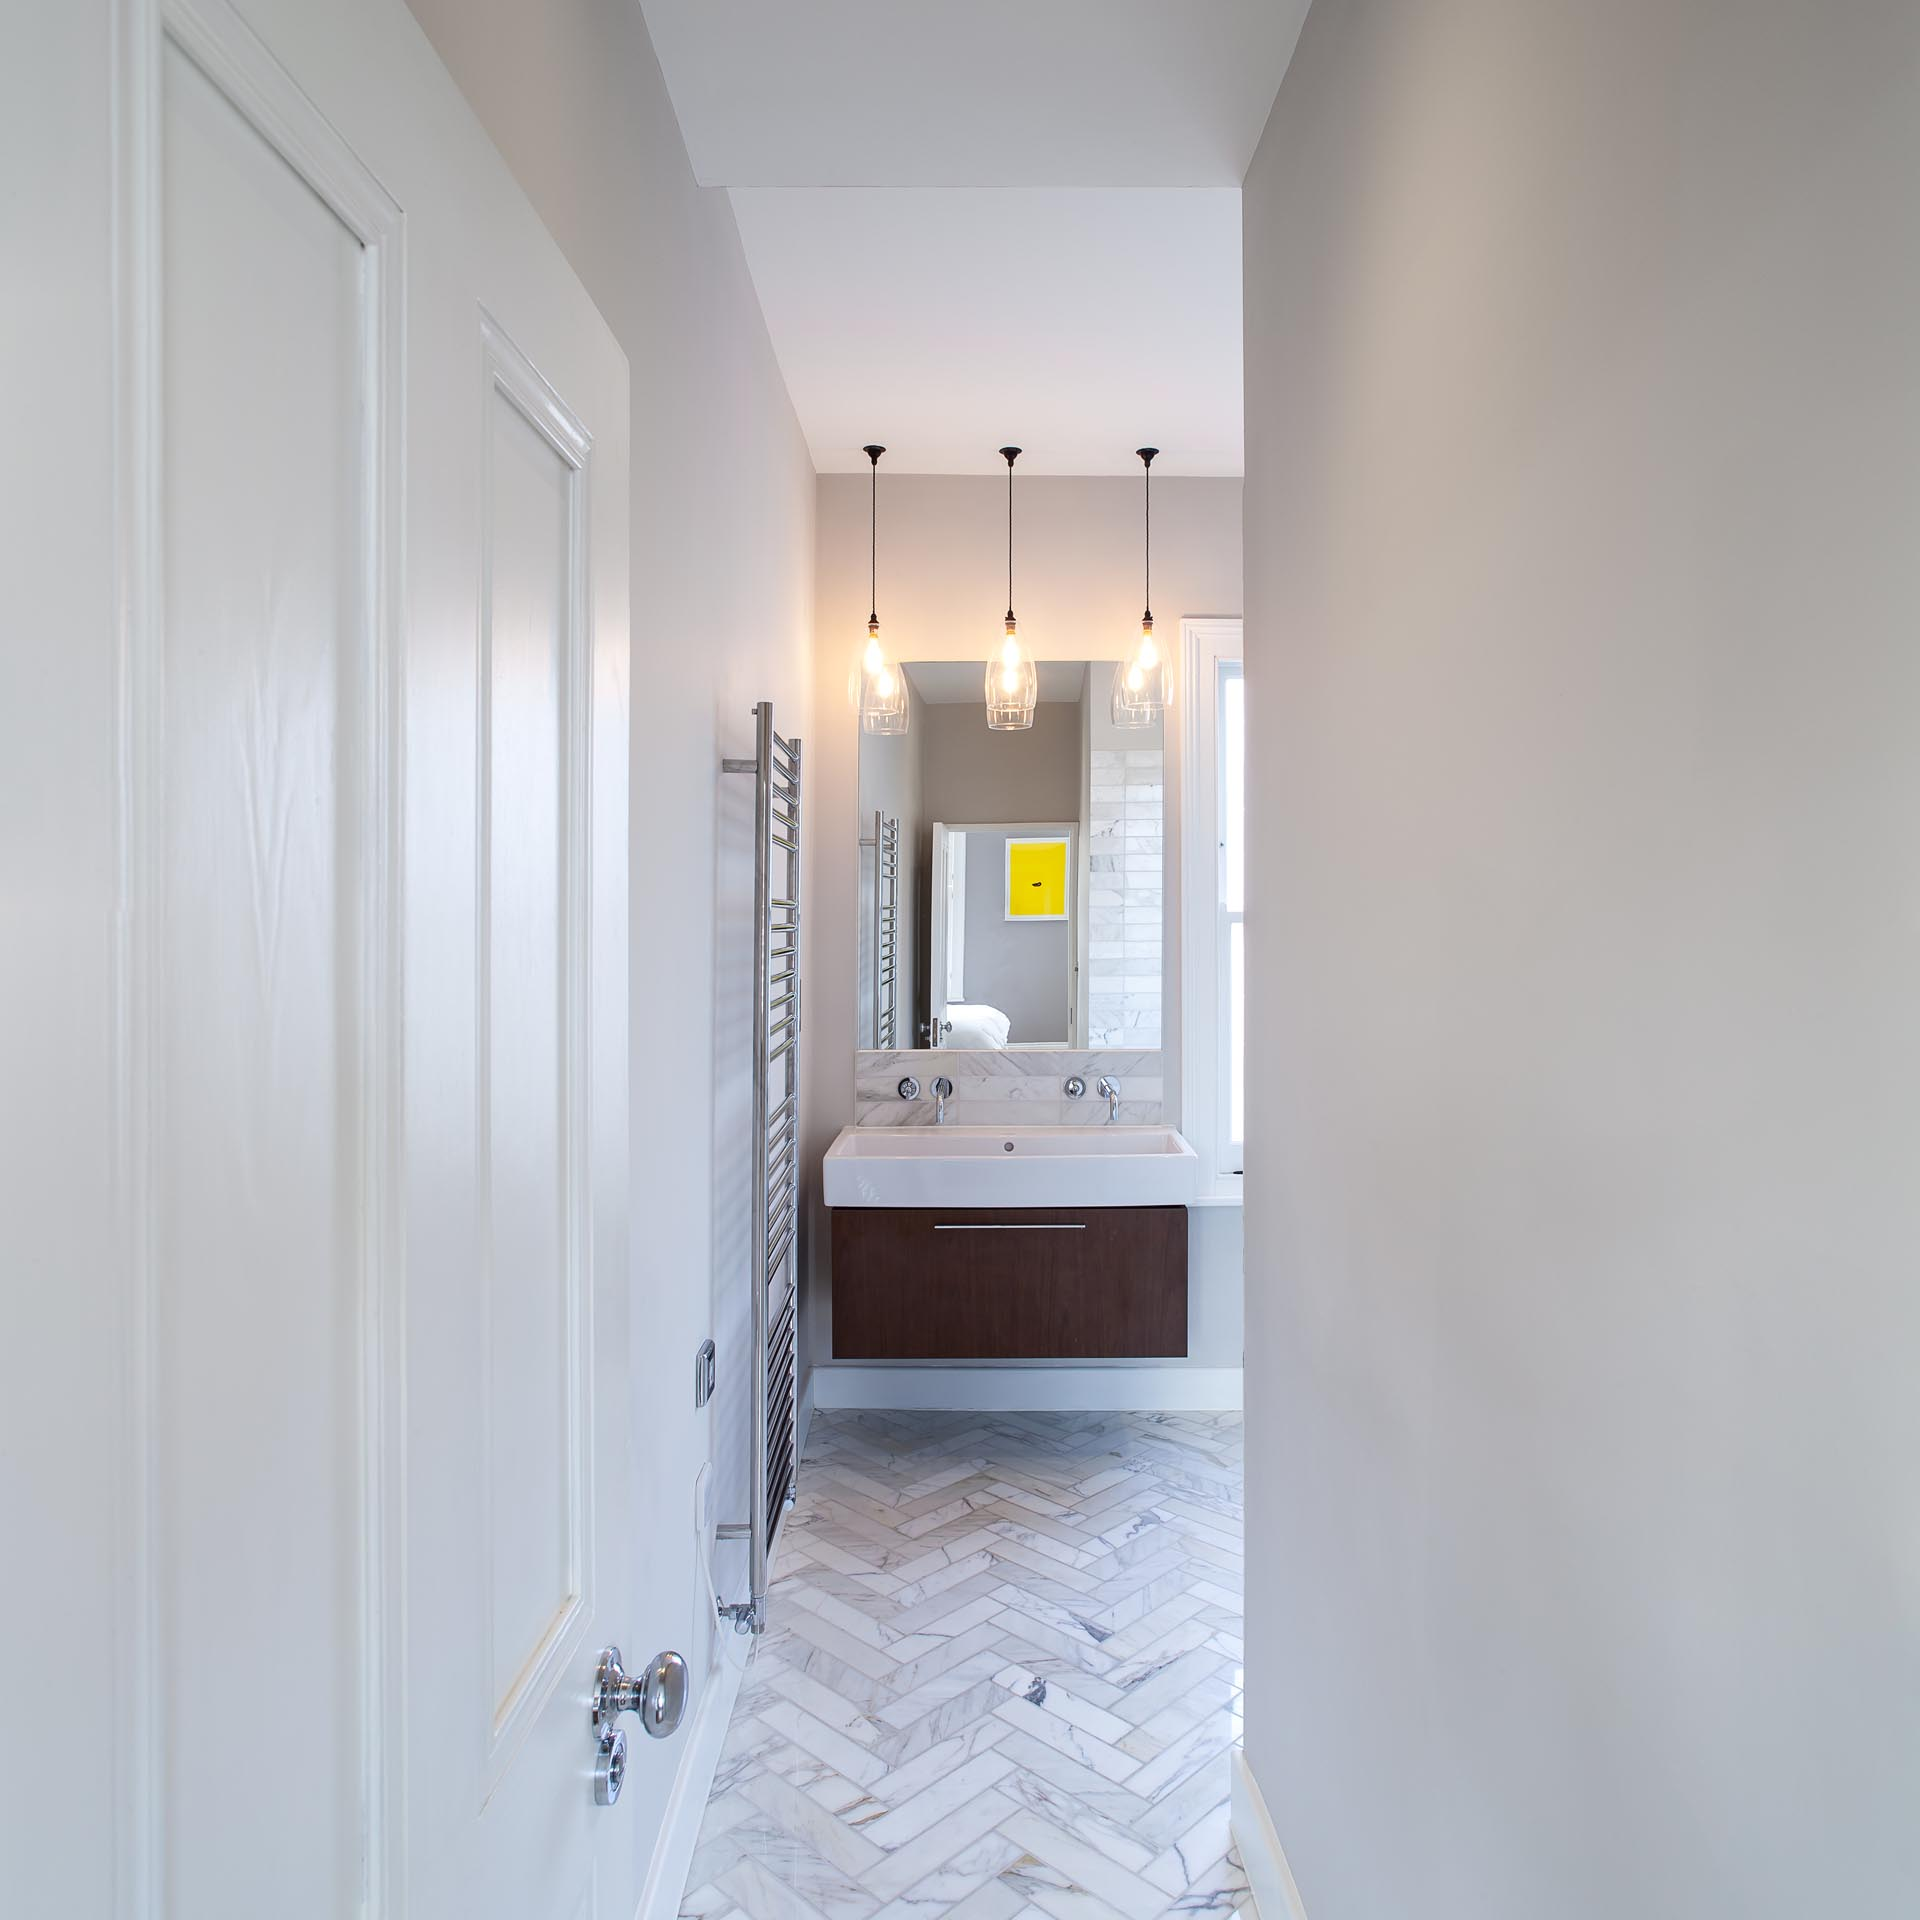 In this contemporary bathroom, gray stone tiles have been used on the floor and walls.